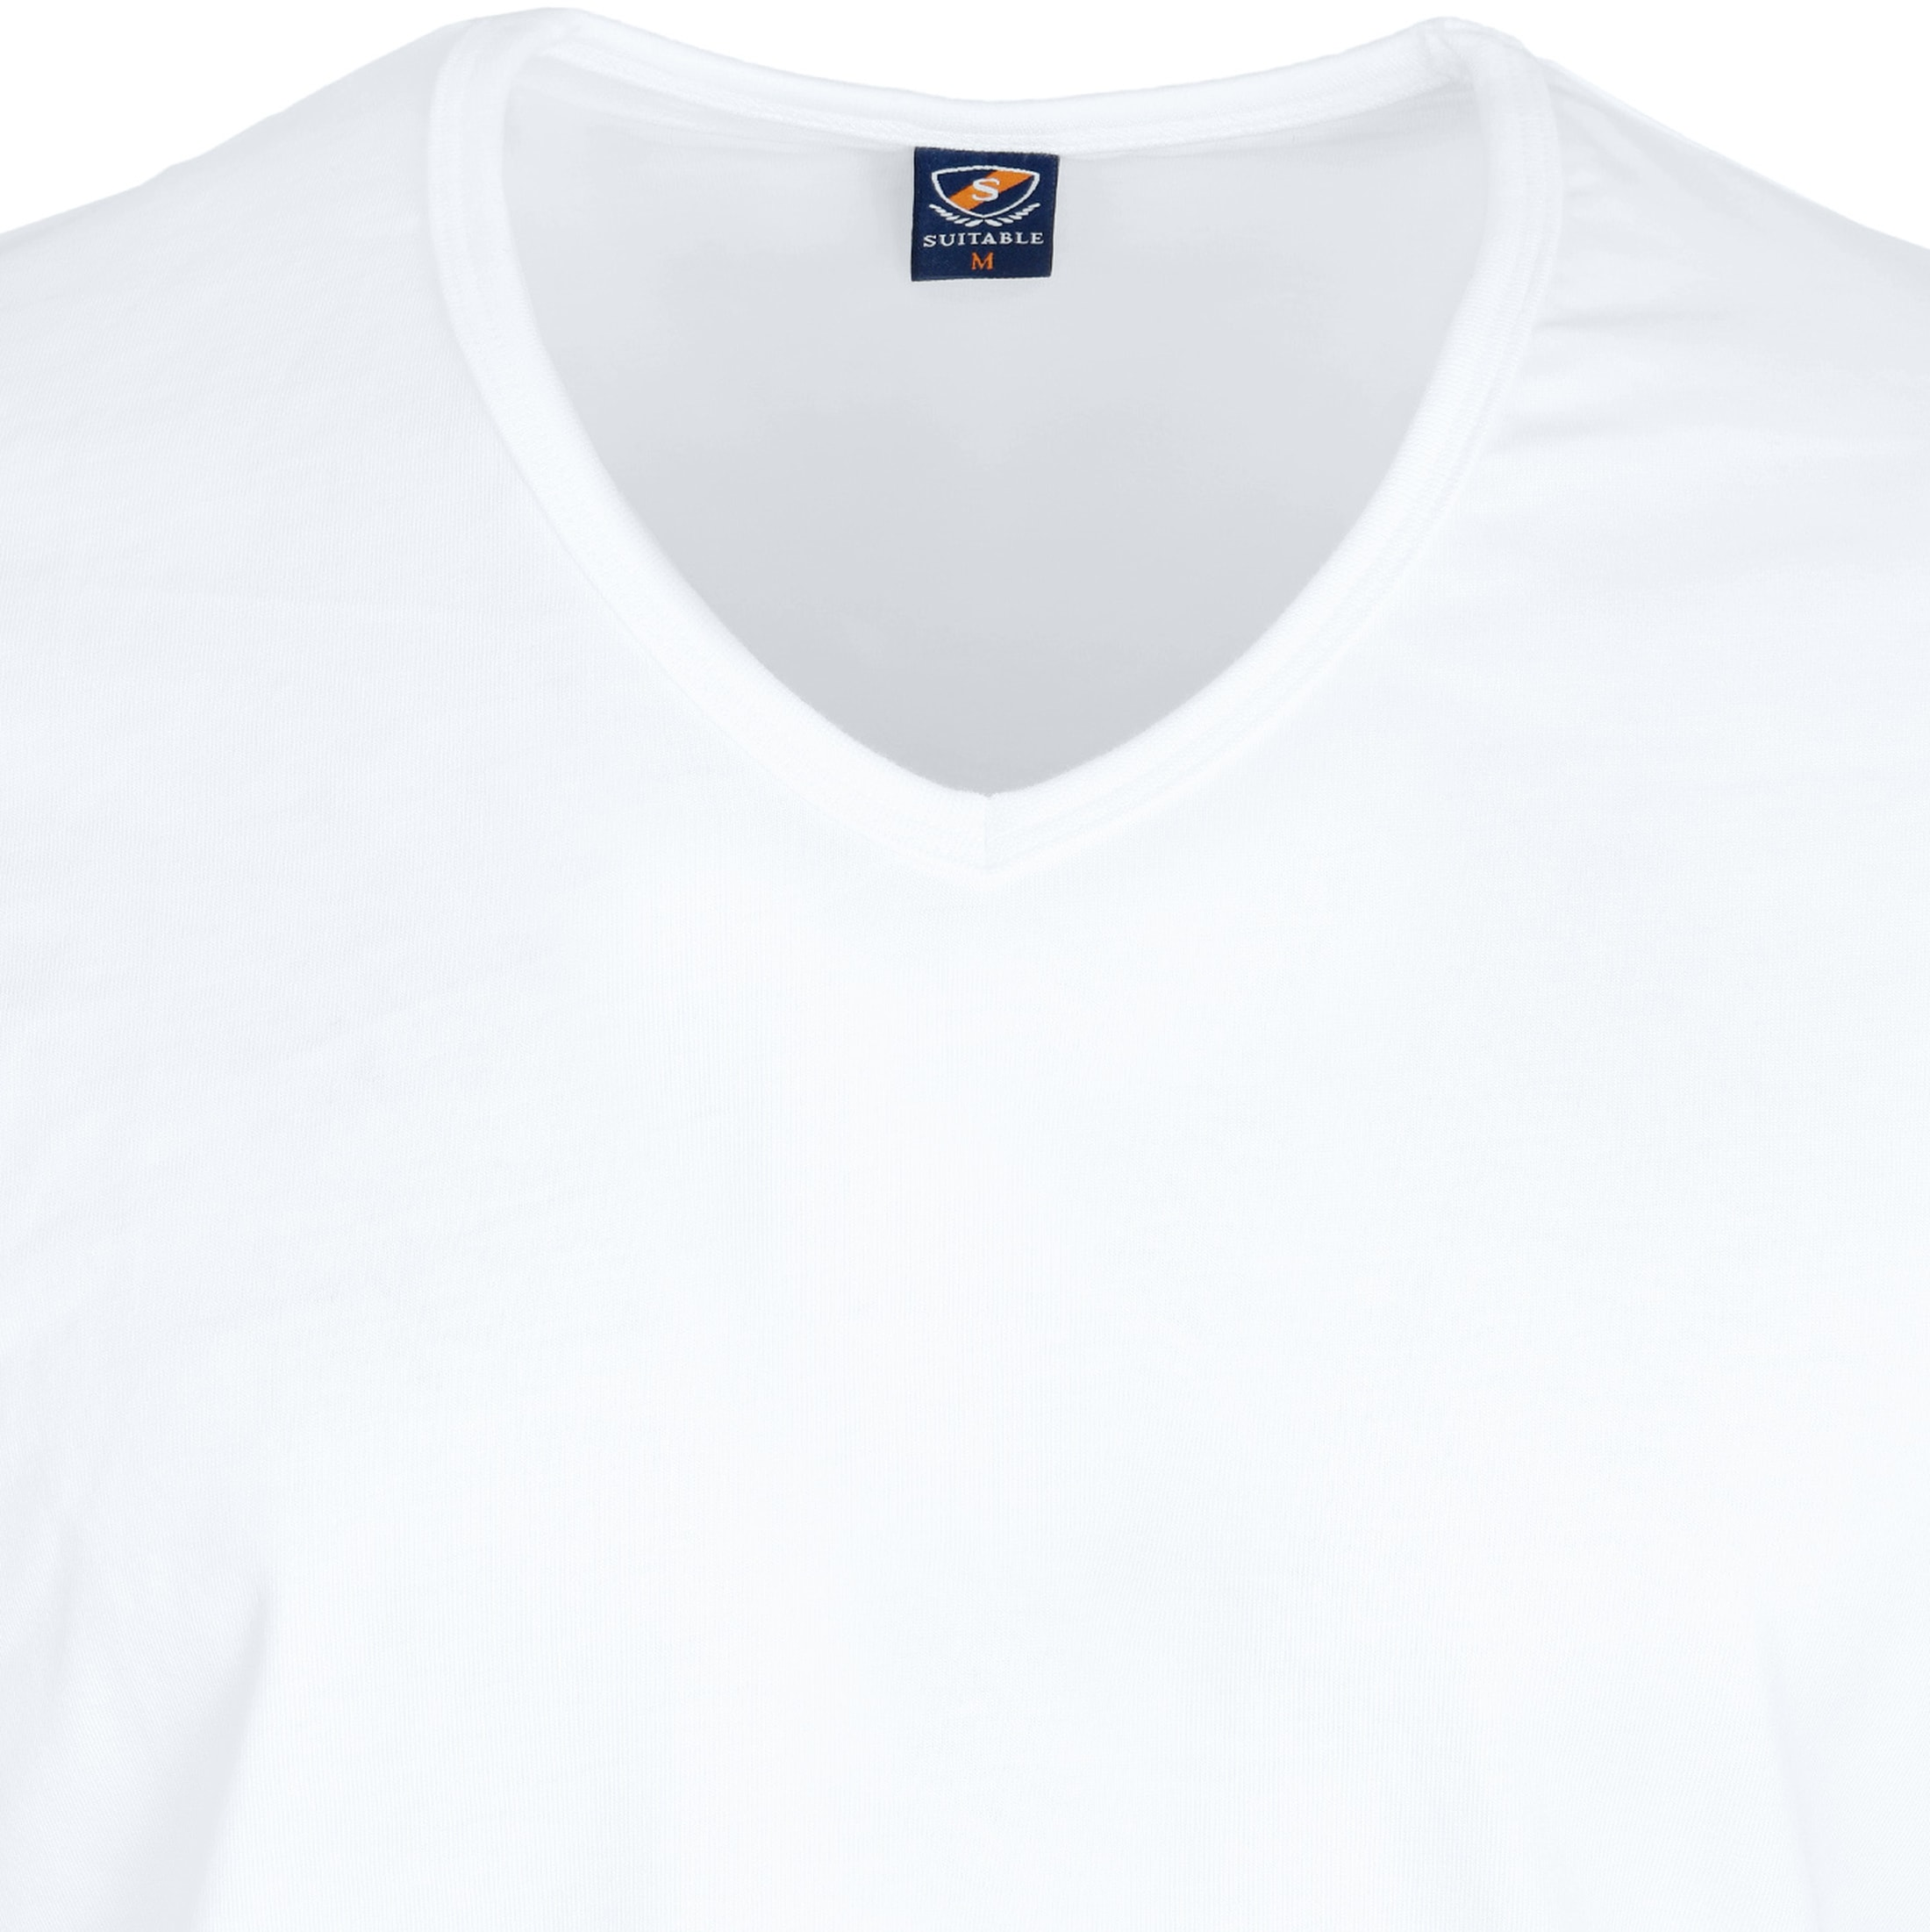 White T-shirt 6-Pack V-Neck foto 2